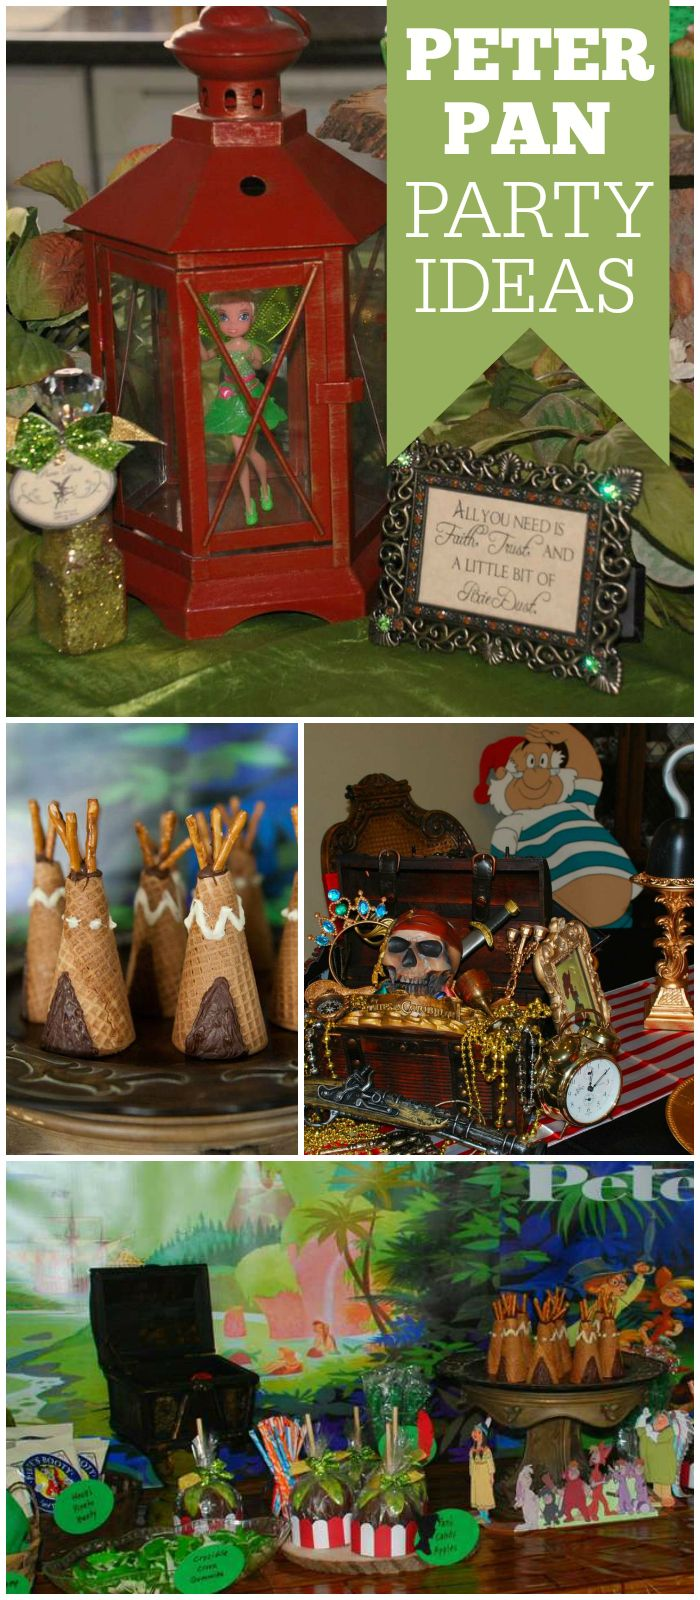 You won't believe the fantastic decorations at this Peter Pan party! See more party planning ideas at CatchMyParty.com!